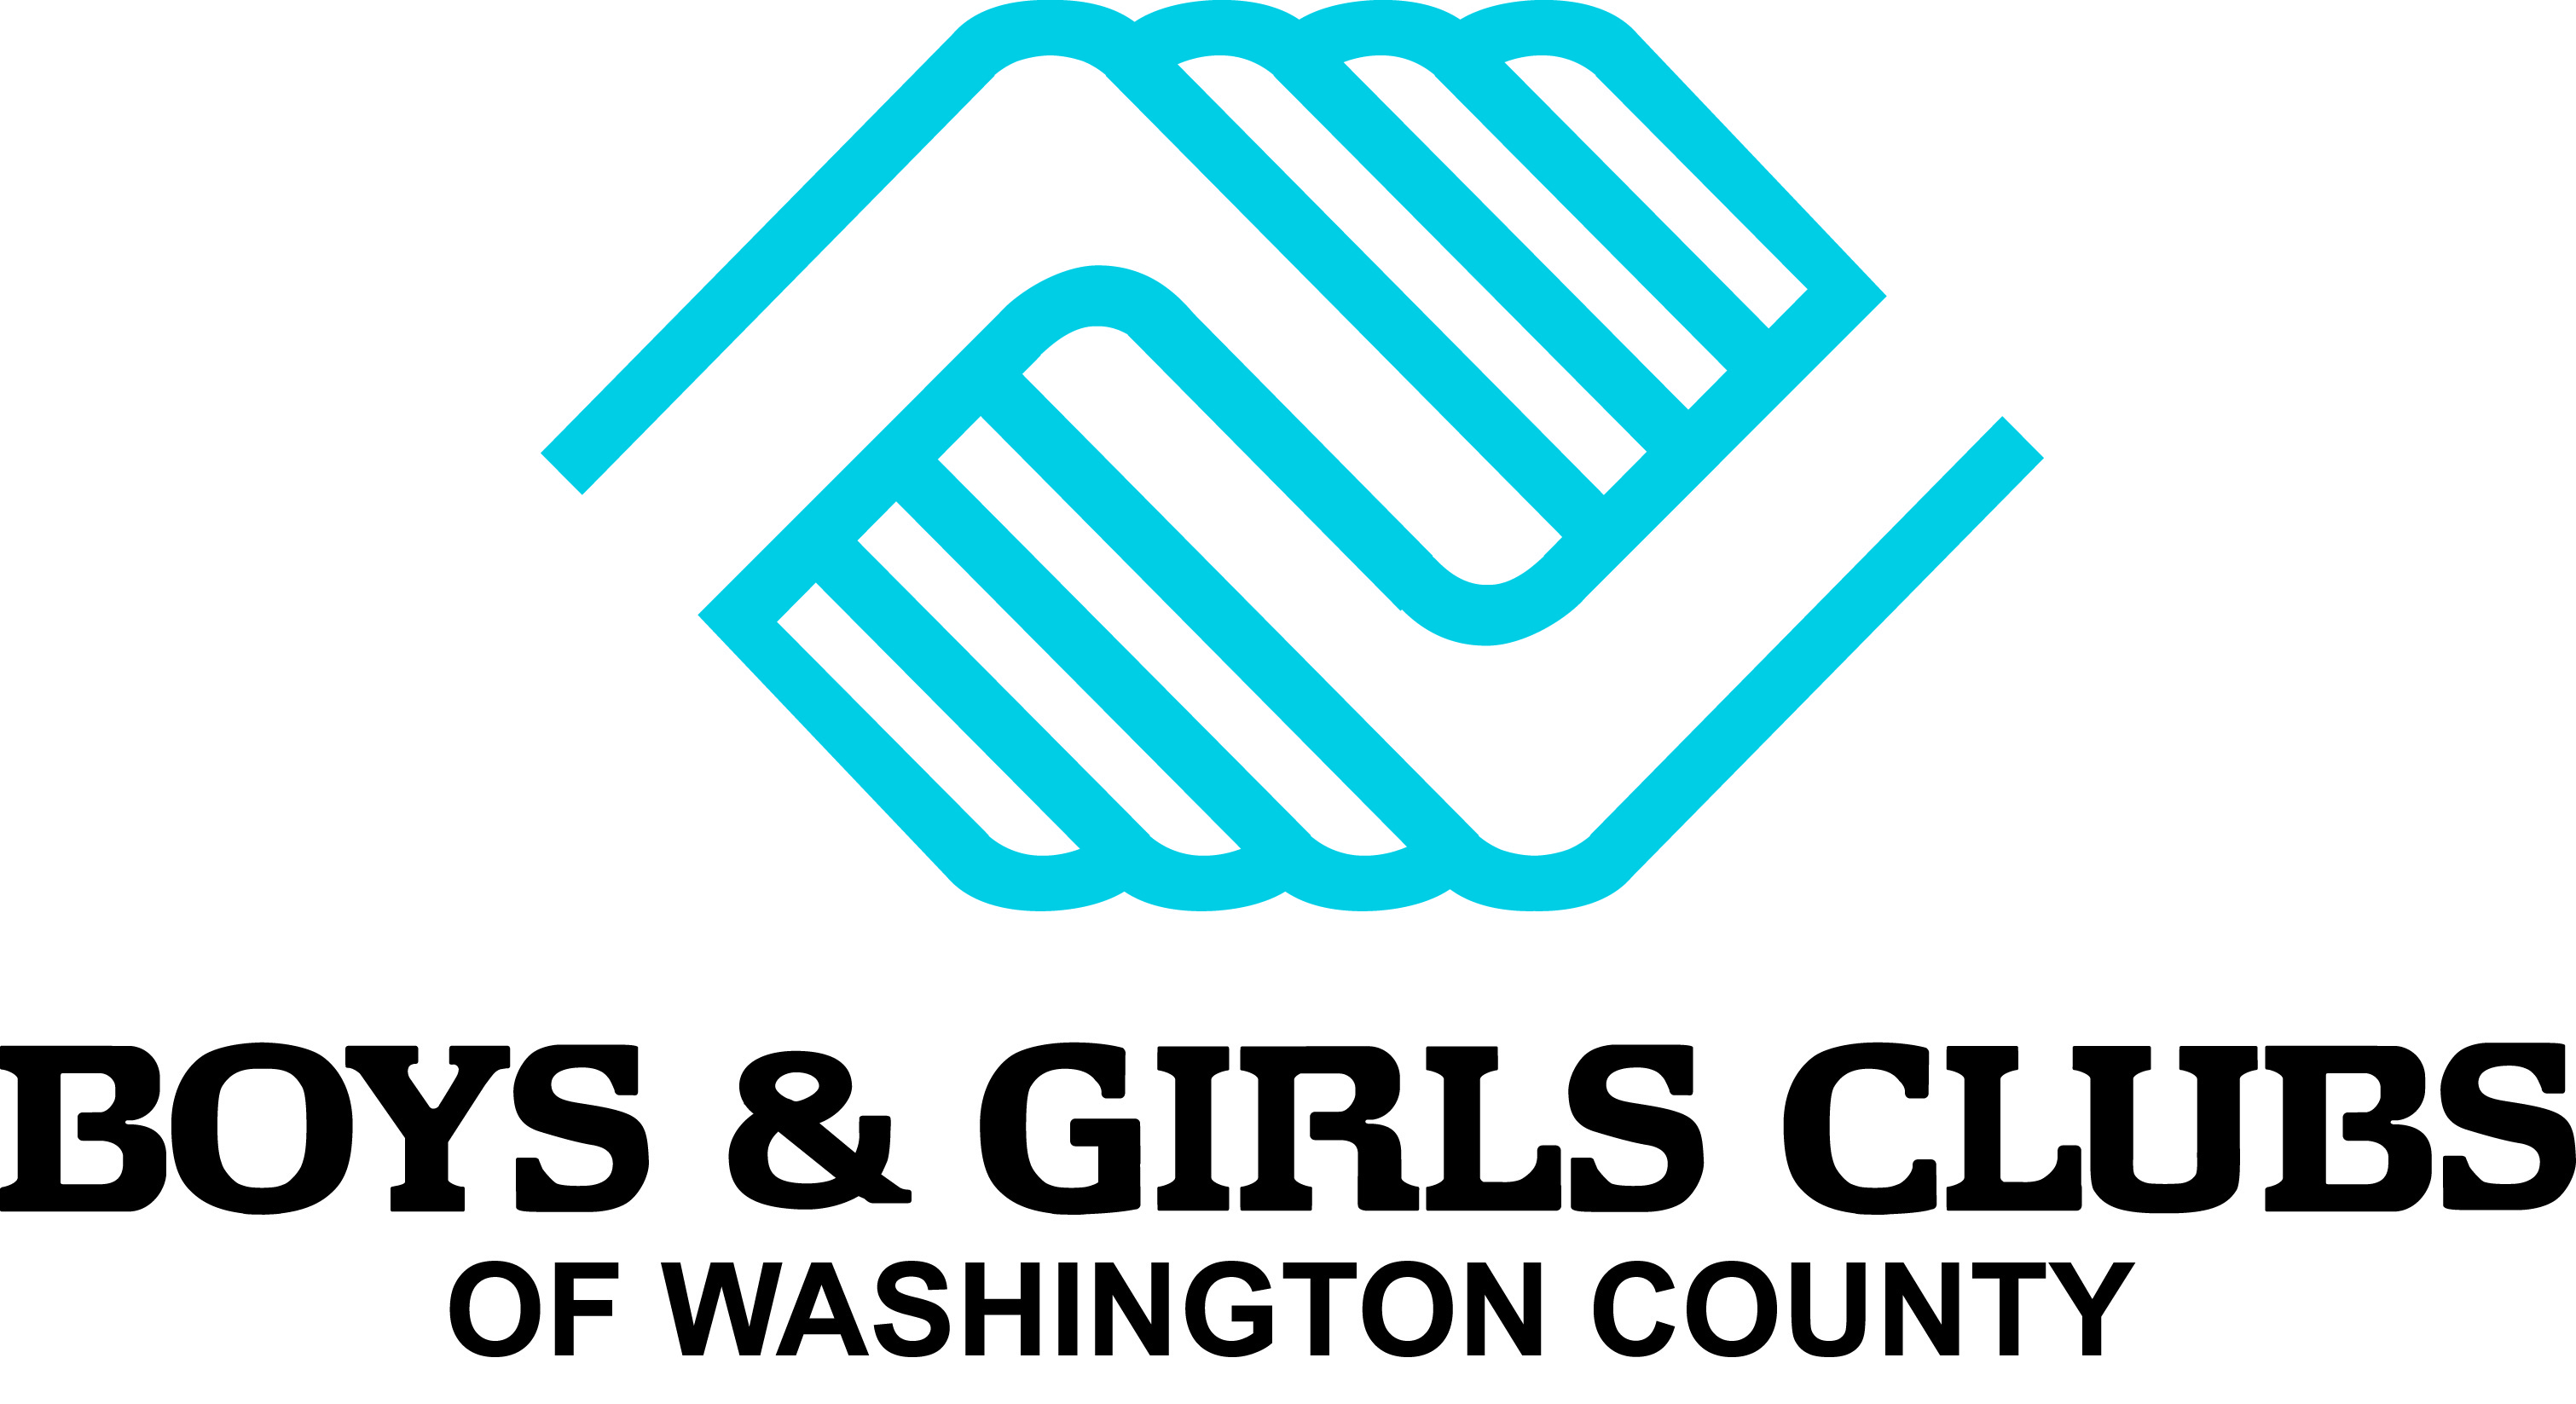 Boys & Girls Club Washington County